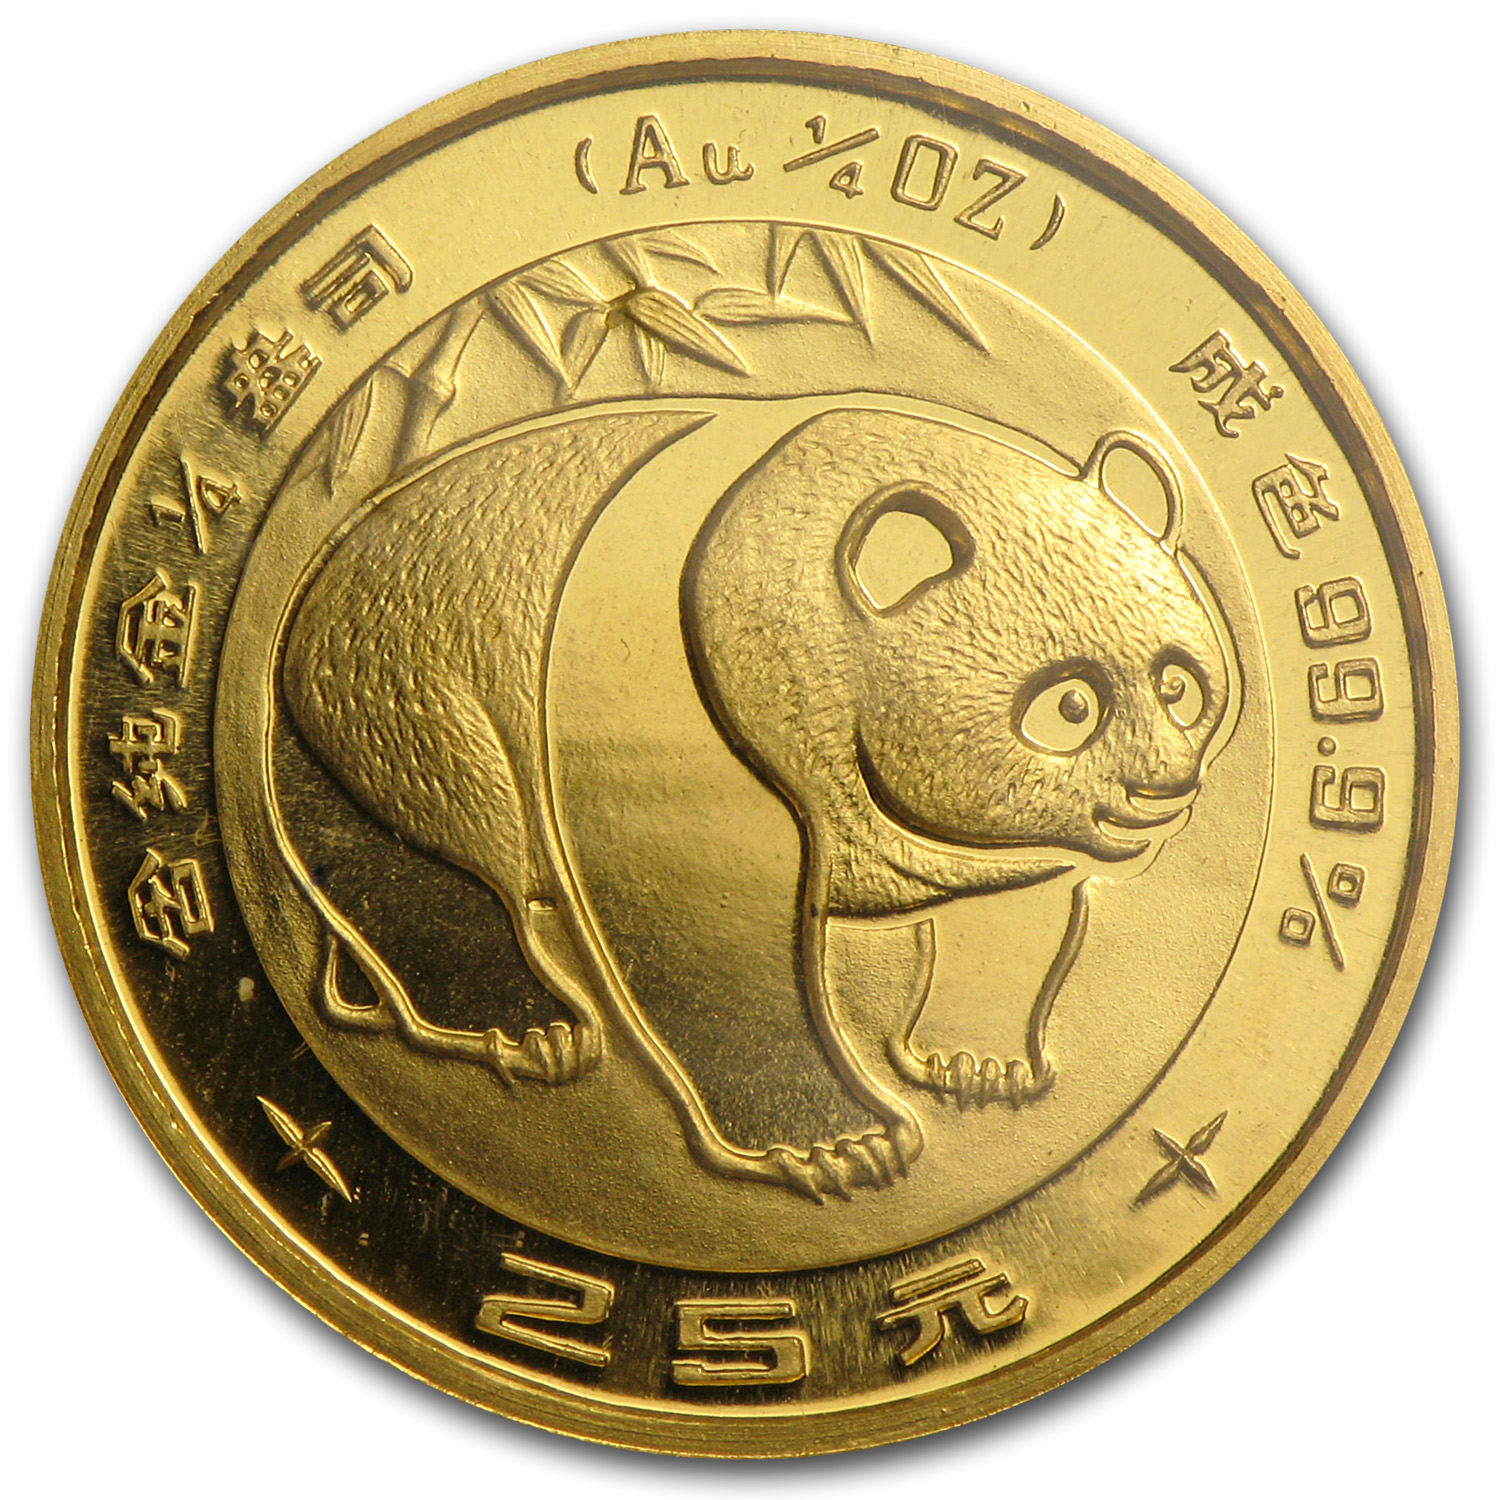 1983 China 1/4 oz Gold Panda BU (Sealed)